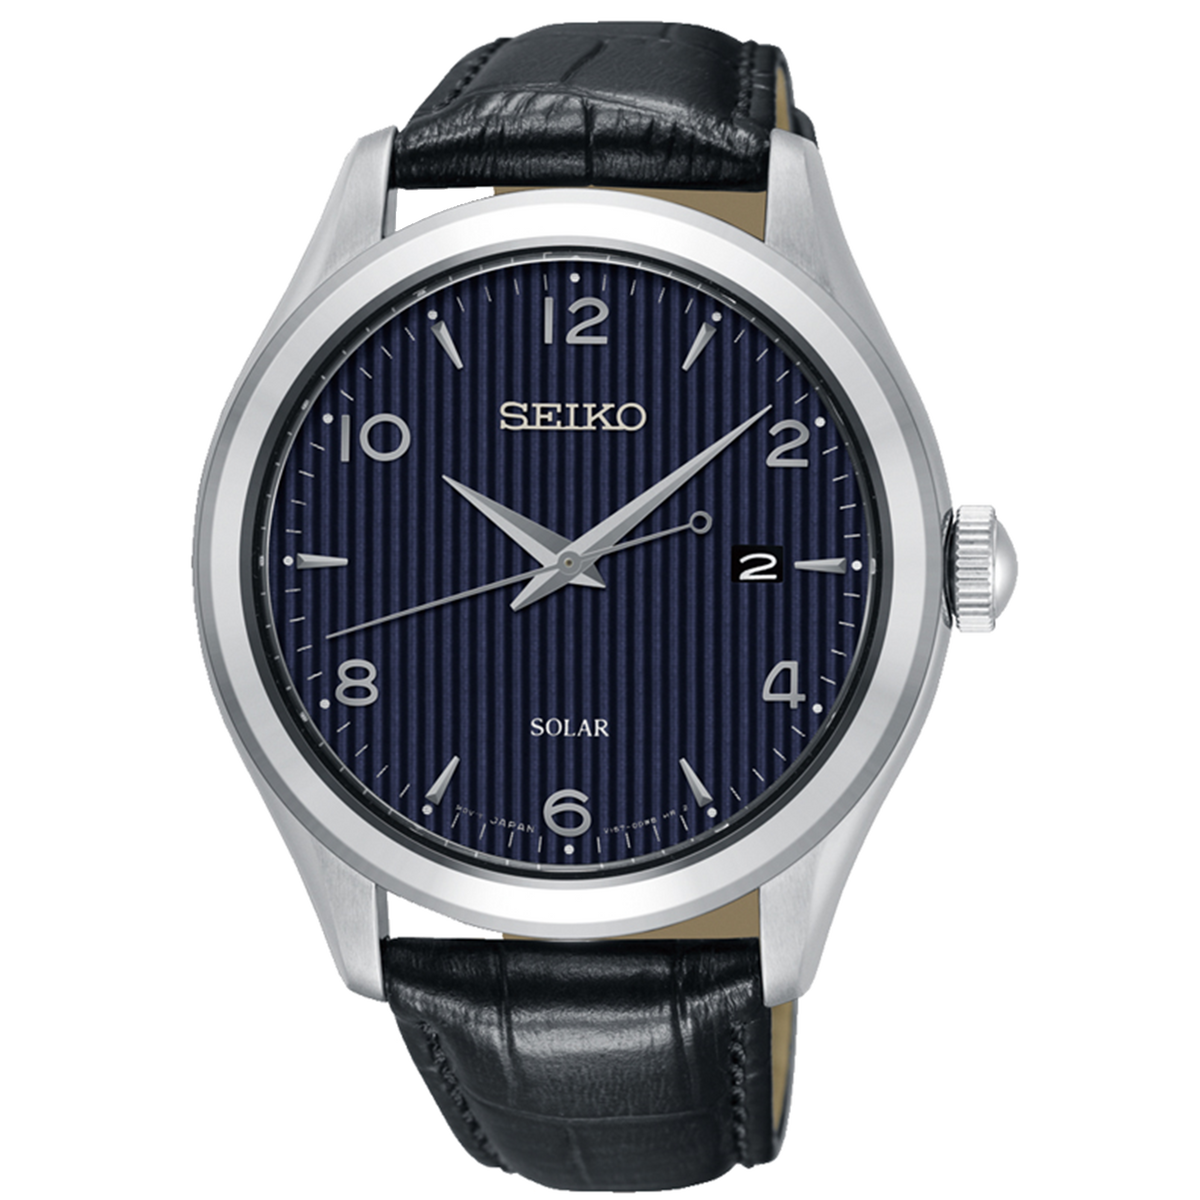 Seiko - Solar Watch with Black leather